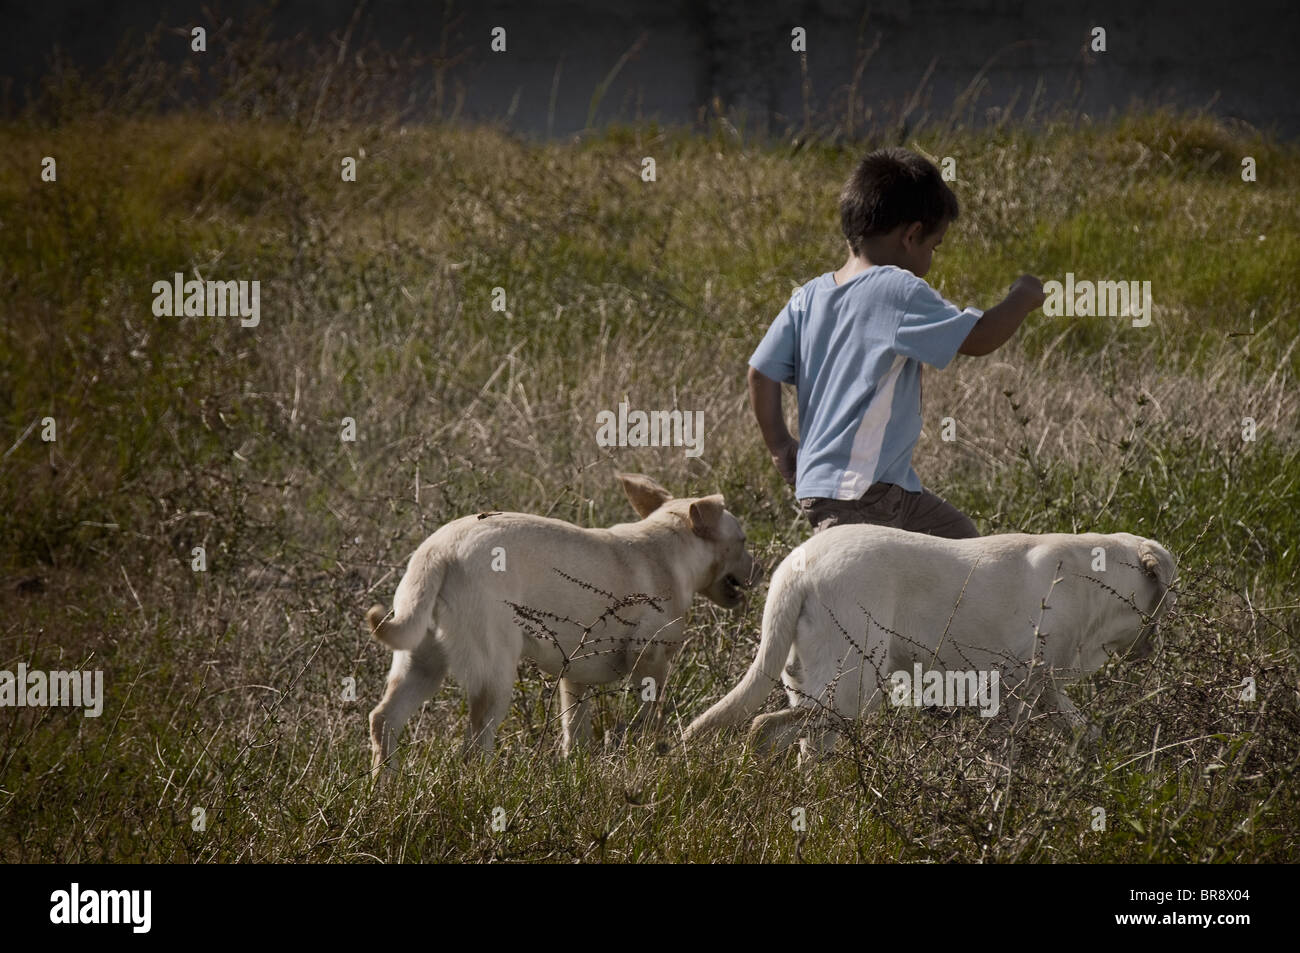 Country life boy playing with labrador dogs on the field by sunset (I added a vignette effect to the image) Stock Photo